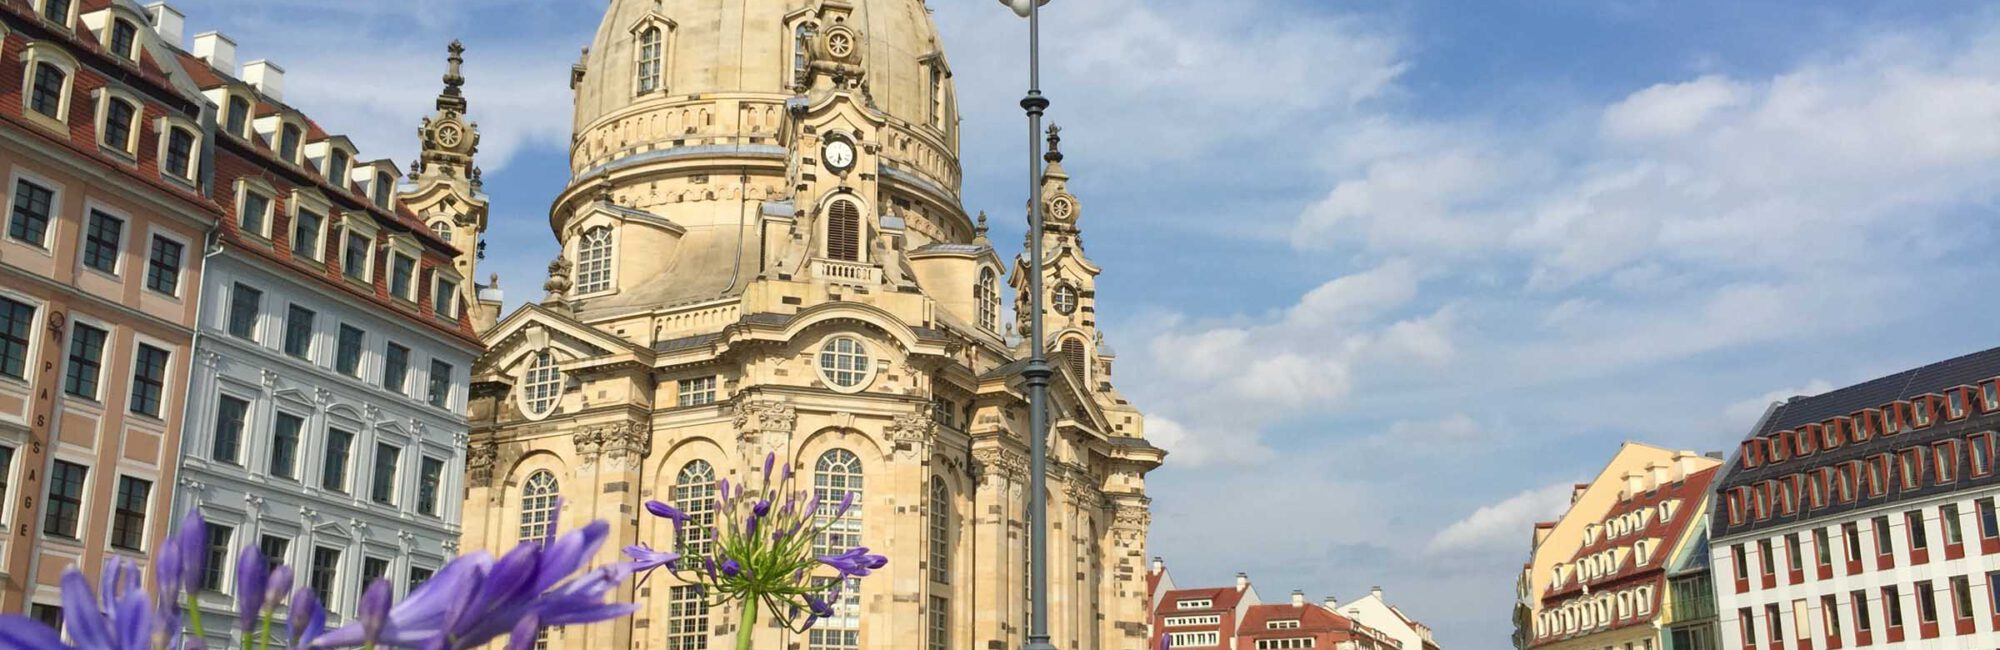 Frauenkirche in Dresden